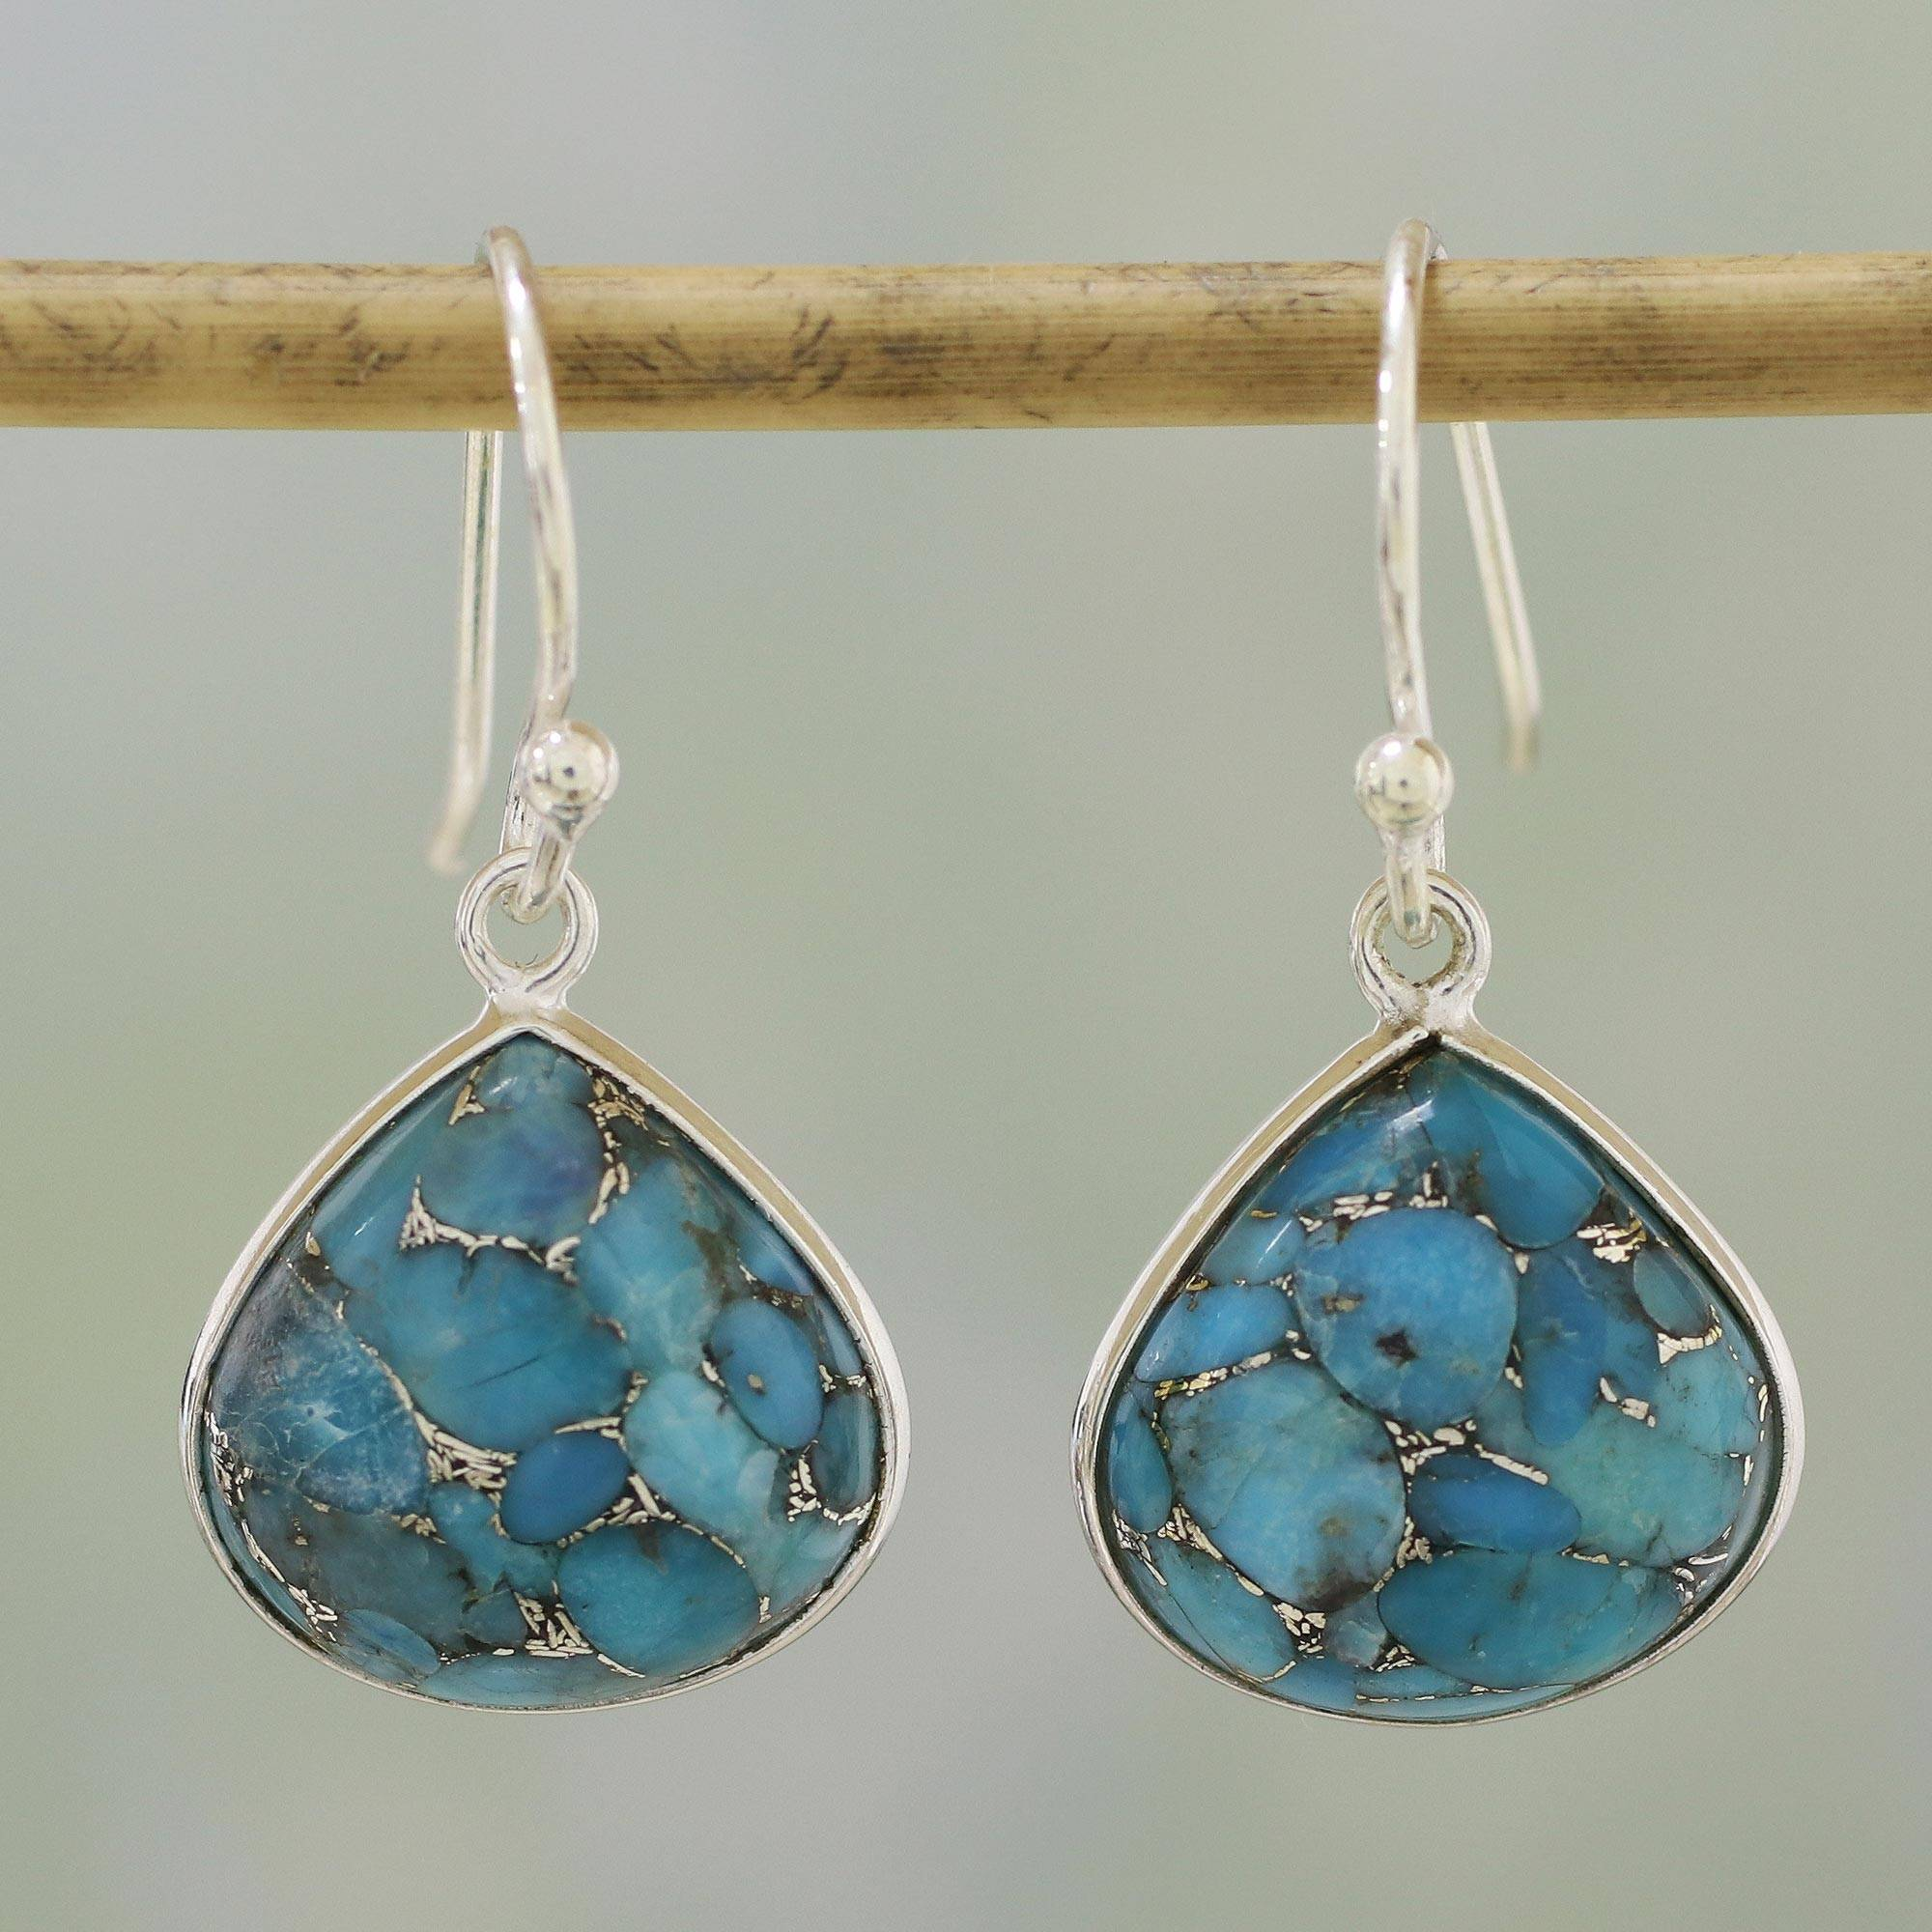 536f936b4 Sterling Silver and Composite Turquoise Earrings from India,